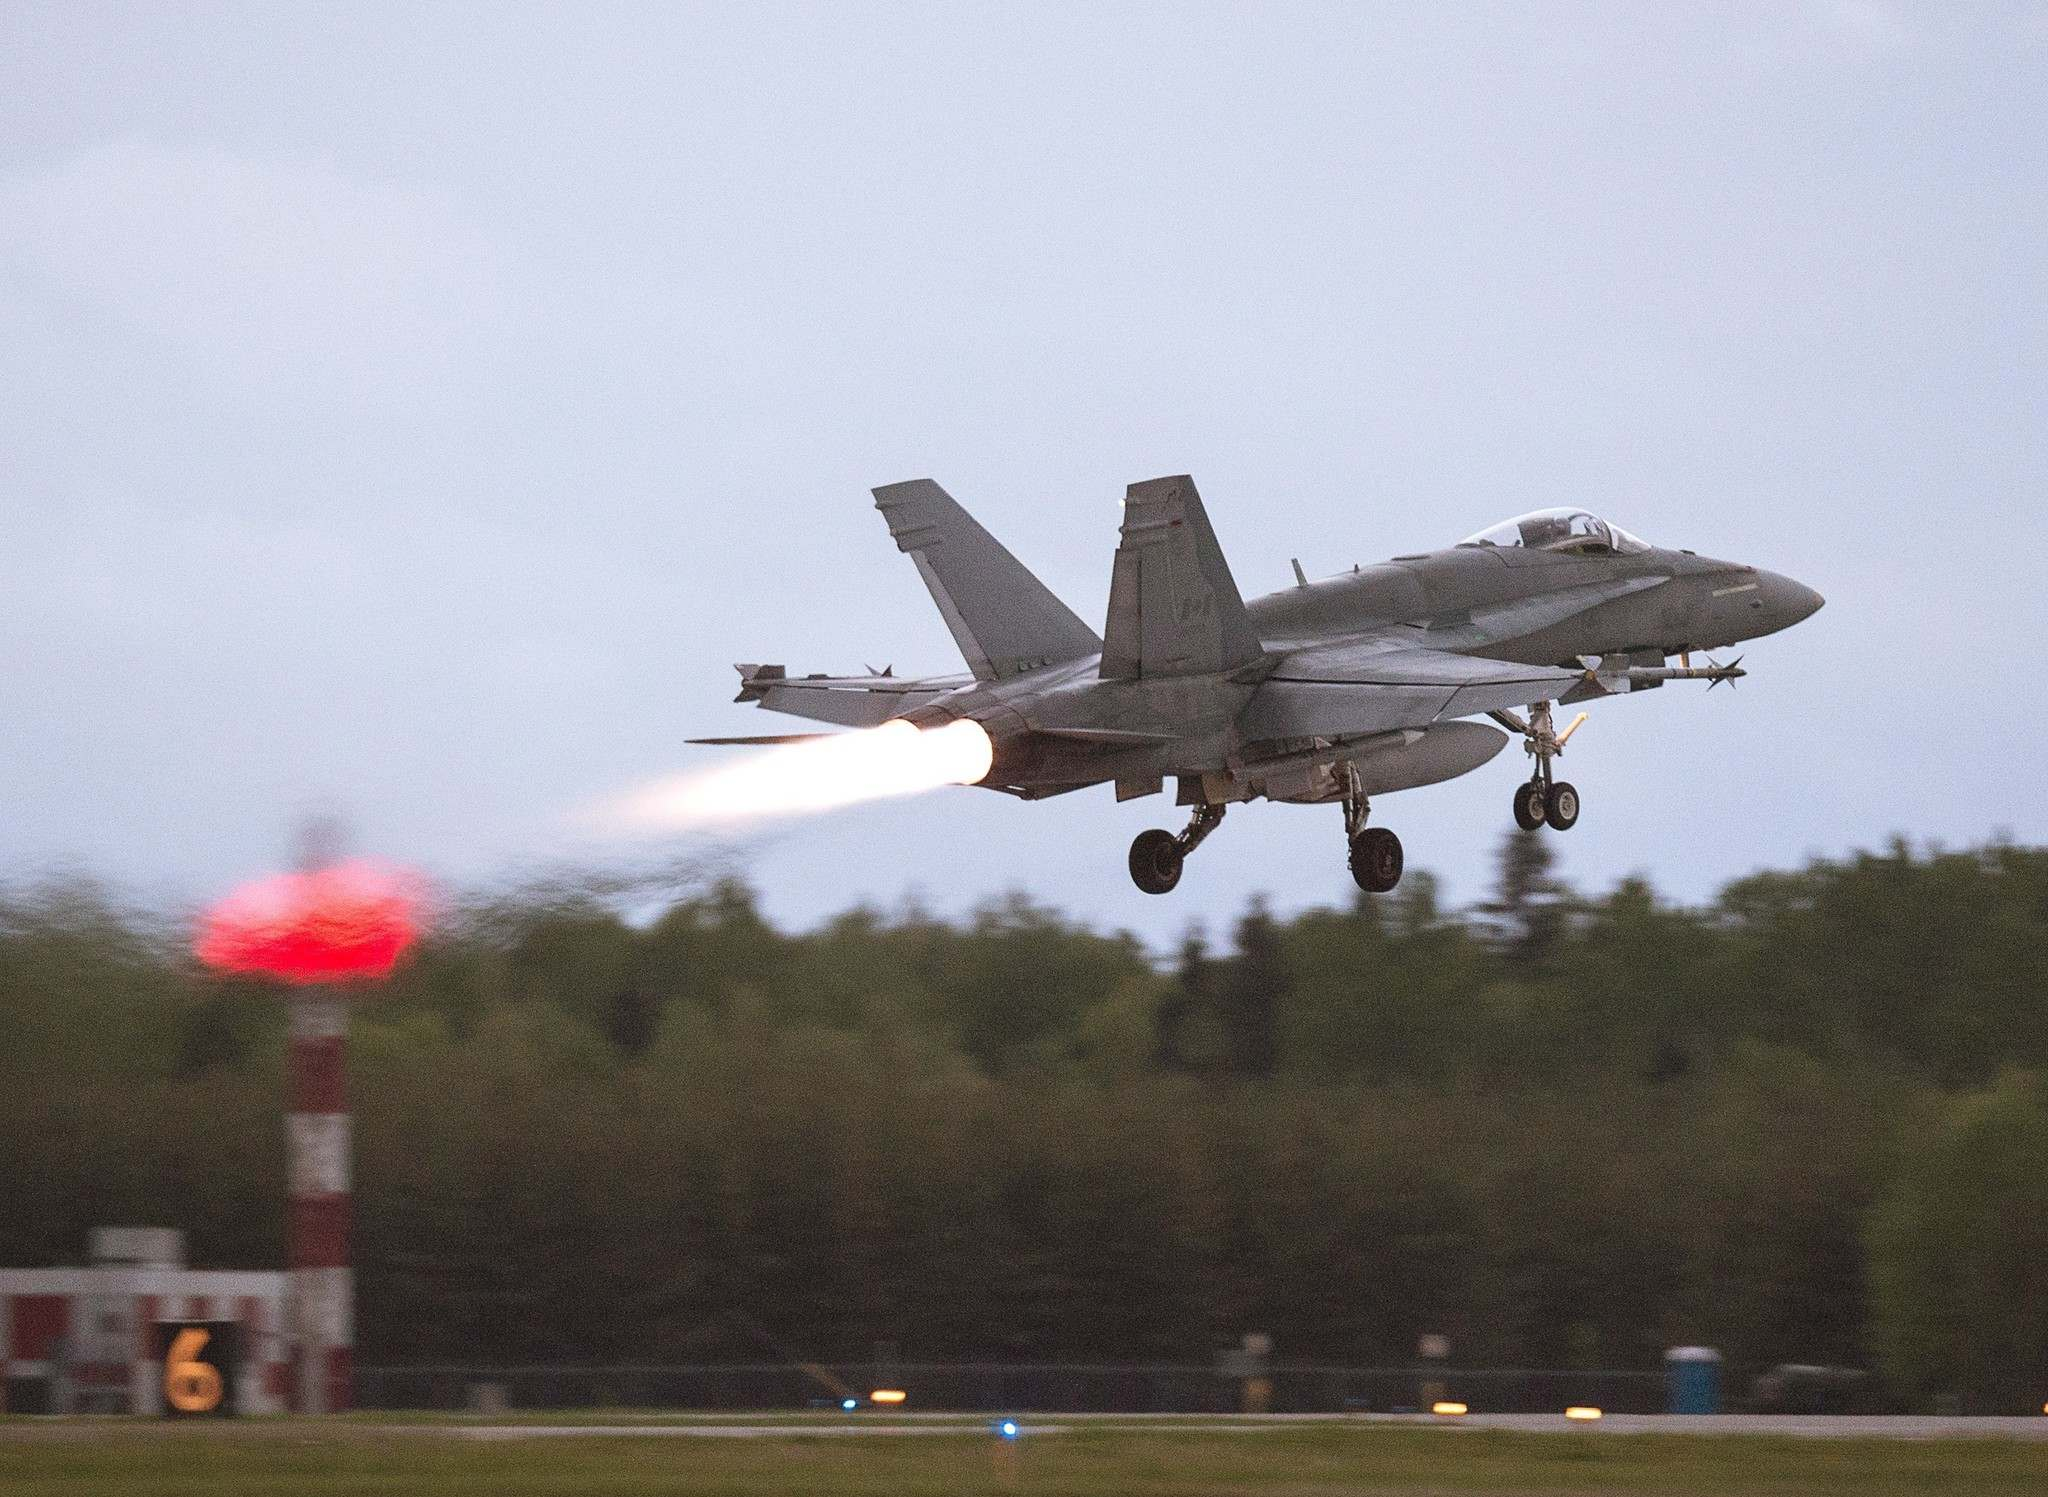 An RCAF CF-18 takes off from CFB Bagotville, Que. on Thursday, June 7, 2018. In 2016, the Liberals were planning to spend billions of dollars on 18 new Super Hornet jets to supplement Canada&rsquo;s aging CF-18 fleet. (Andrew Vaughan / The Canadian Press files)</p>